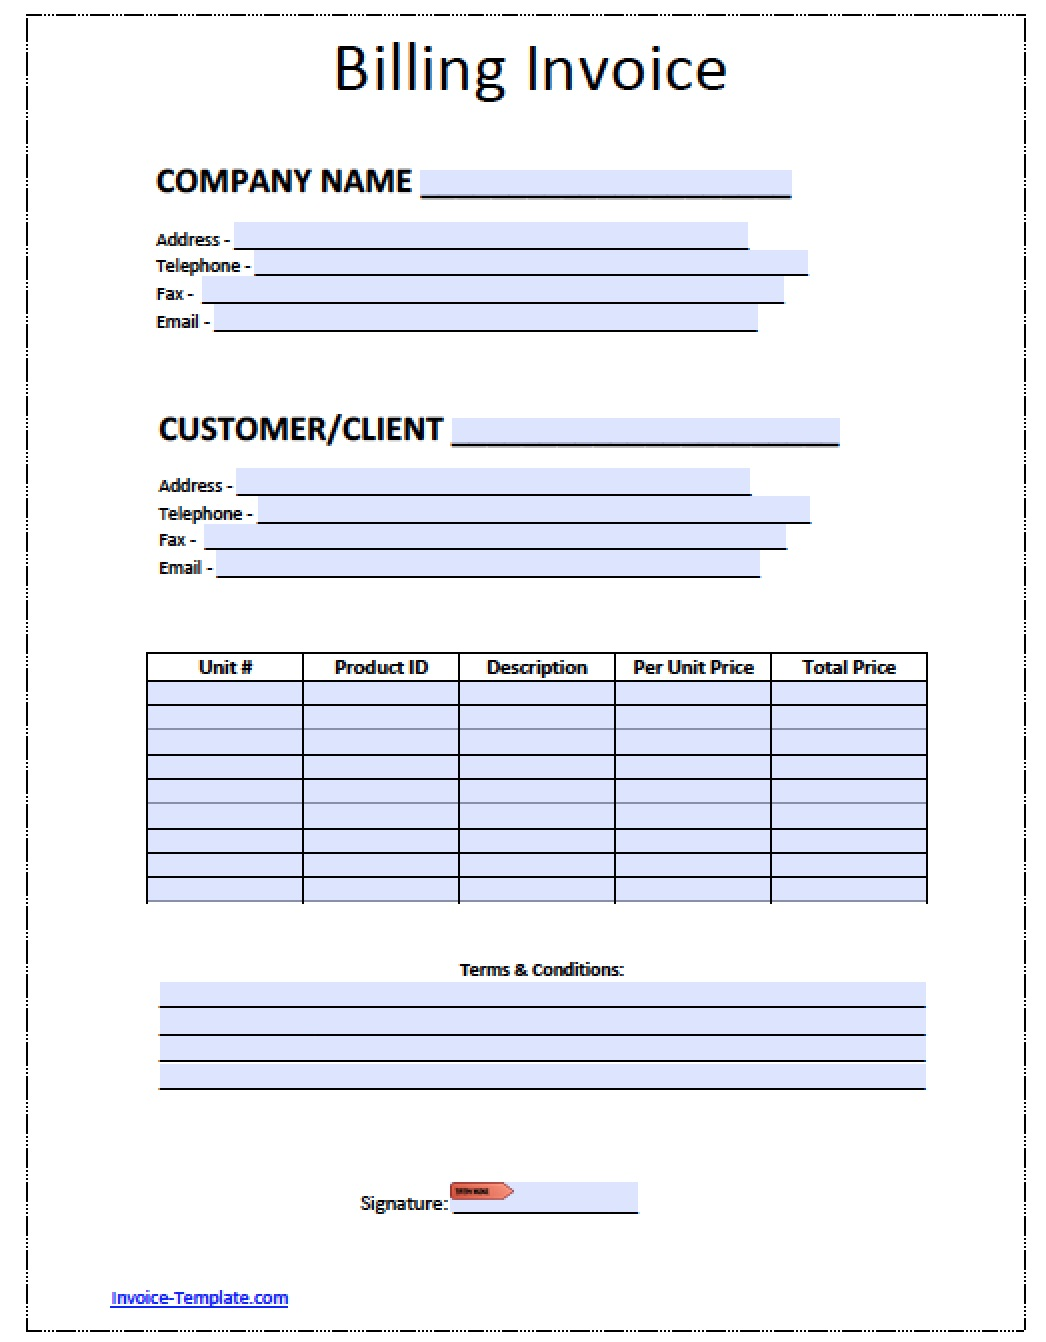 Theologygeekblogus  Outstanding Billing Invoice Invoices Faq U Cloudflare Support Billing  With Great Free Billing Invoice Template  Excel  Pdf  Word Doc  Billing With Awesome Invoice Accounting Definition Also Woocommerce Invoice Plugin In Addition Examples Of Invoices Templates And Microsoft Office Templates Invoice As Well As What Is The Difference Between Invoice And Msrp Additionally Invoice Audit From Happytomco With Theologygeekblogus  Great Billing Invoice Invoices Faq U Cloudflare Support Billing  With Awesome Free Billing Invoice Template  Excel  Pdf  Word Doc  Billing And Outstanding Invoice Accounting Definition Also Woocommerce Invoice Plugin In Addition Examples Of Invoices Templates From Happytomco